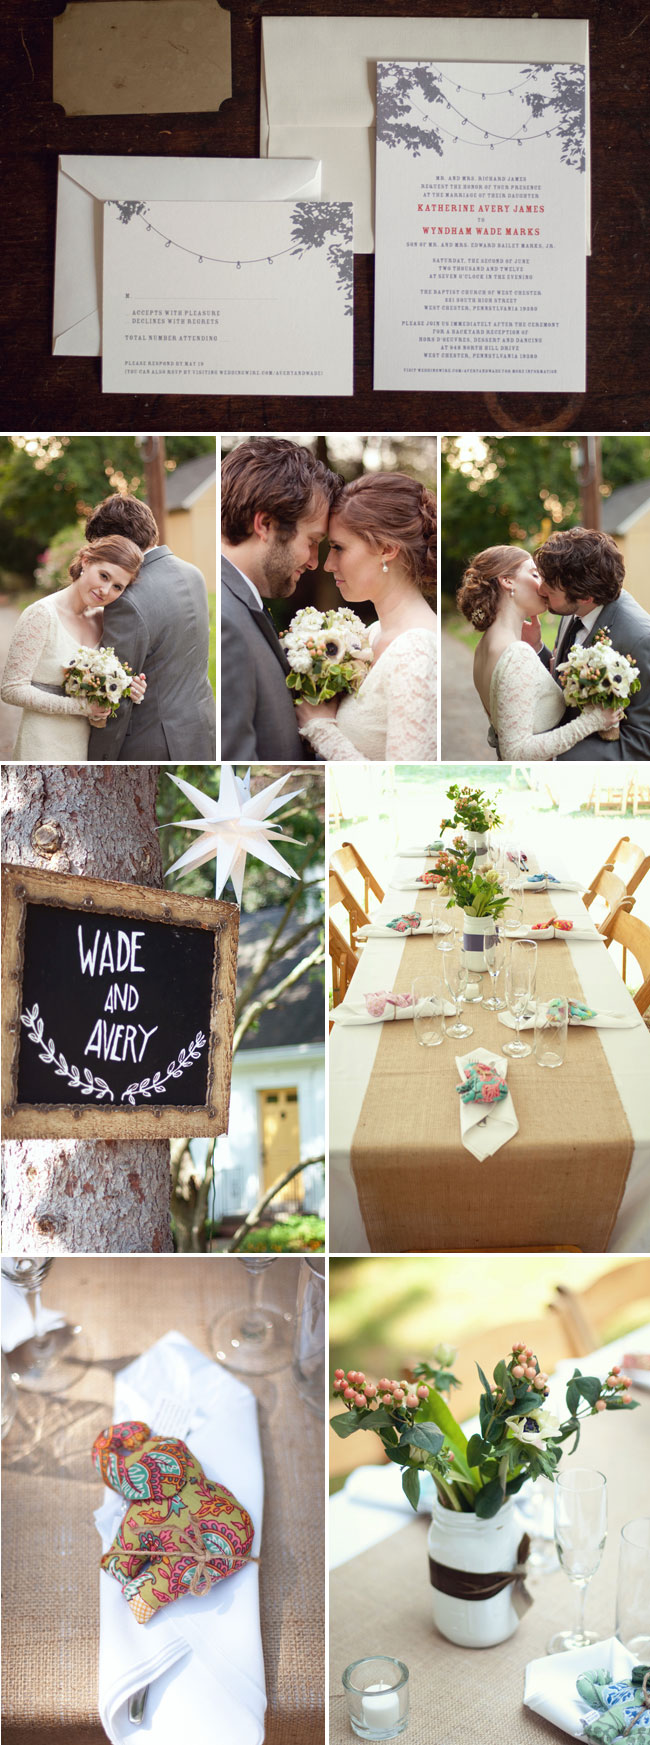 Bilbo Baggins inspired wedding: invitations with light strings from trees, bride and groom names on chalkboard, table setting with hand crafted elephant favors and flowers